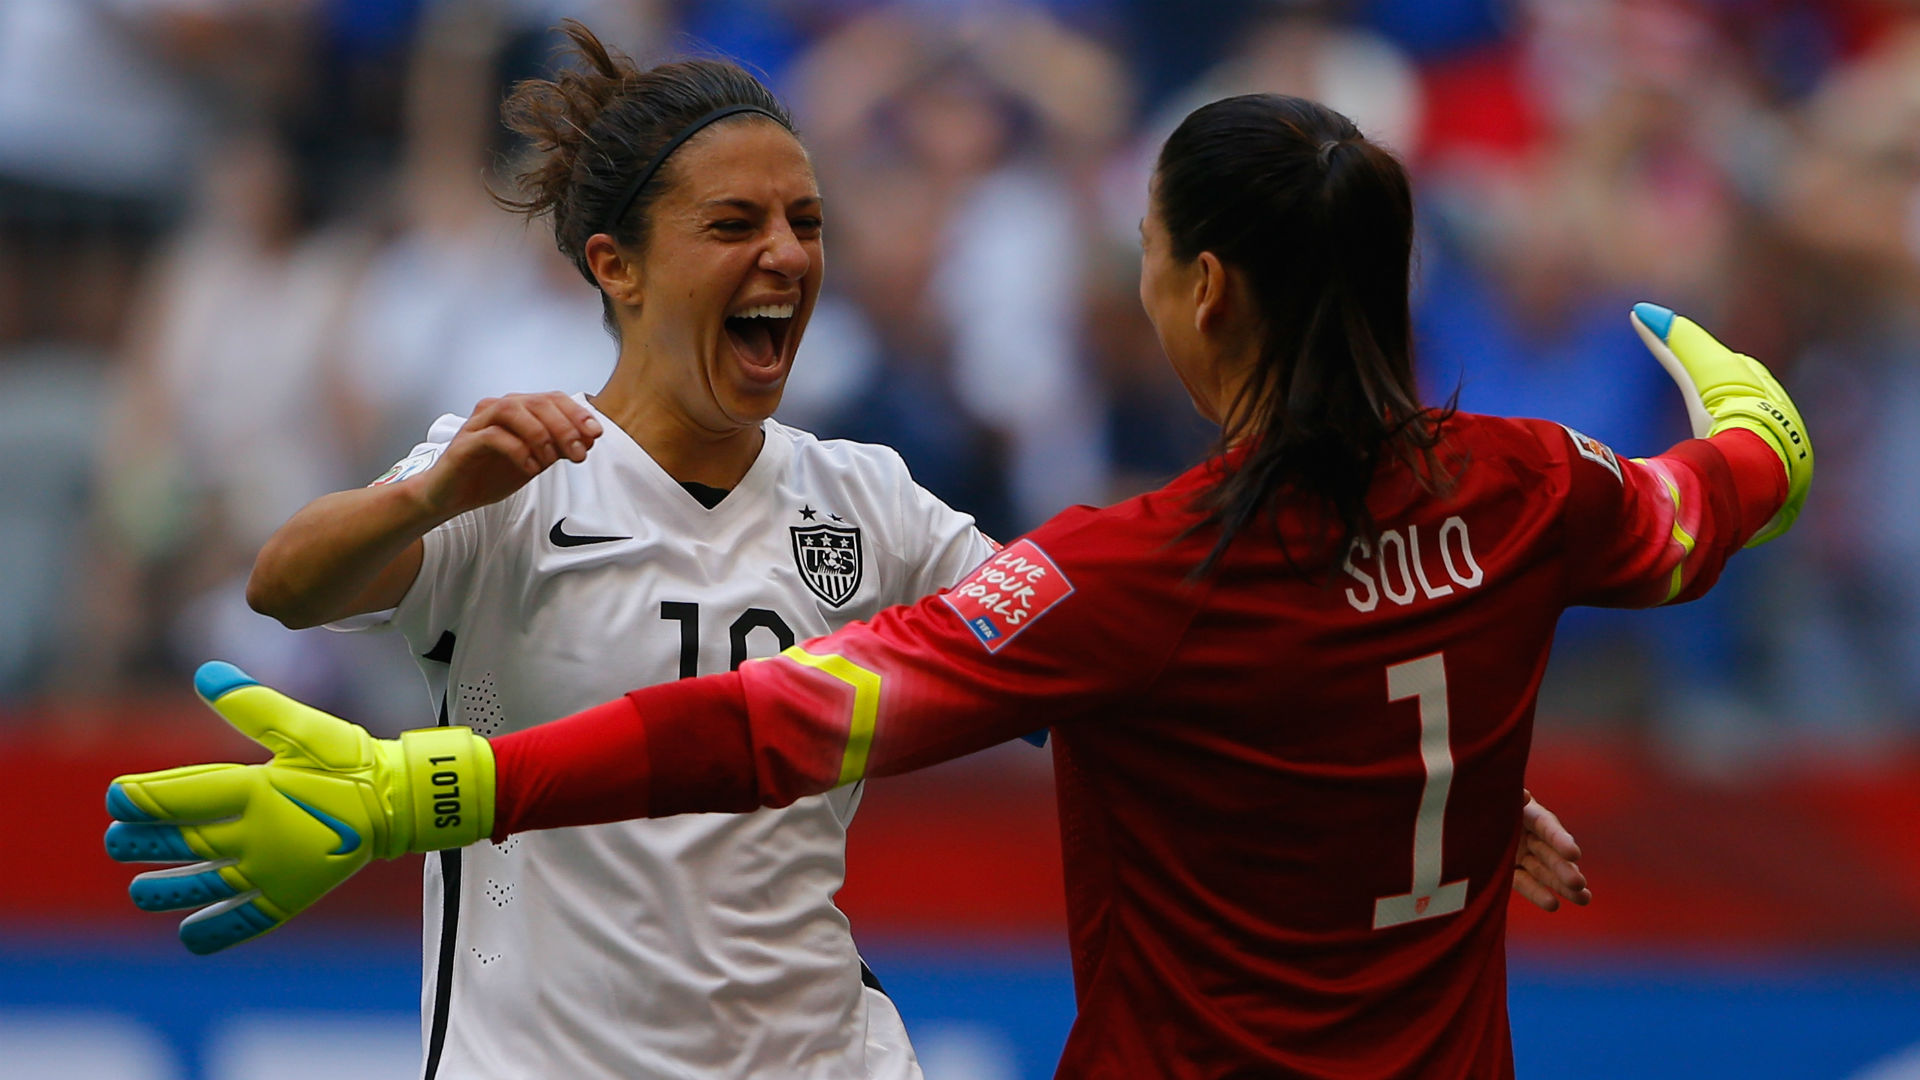 Women's World Cup final draws huge U.S. TV ratings